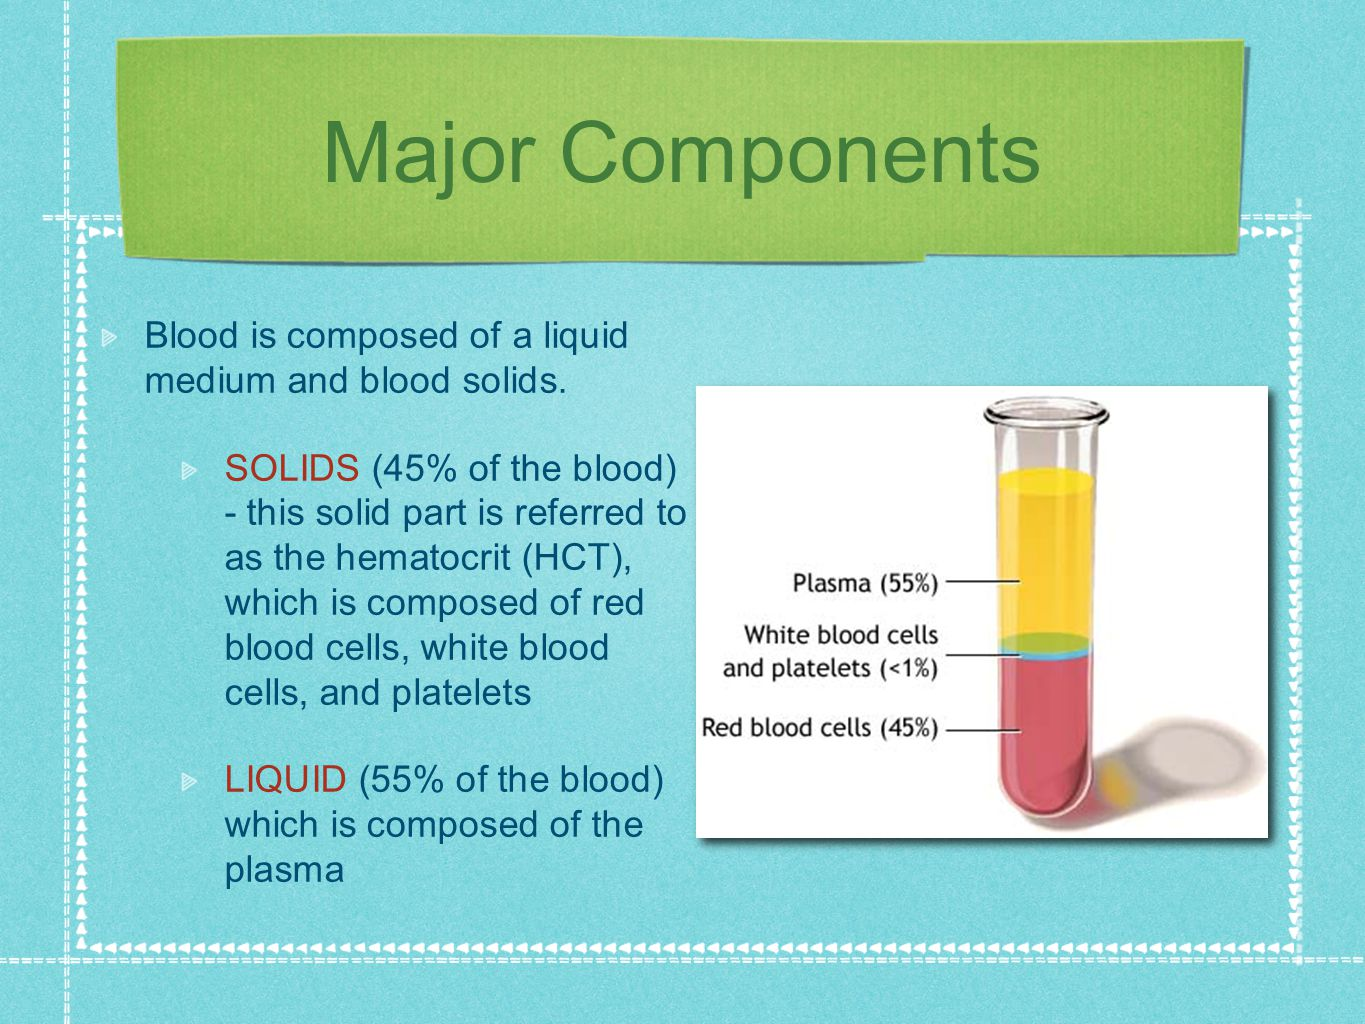 Major Components Blood is composed of a liquid medium and blood solids.